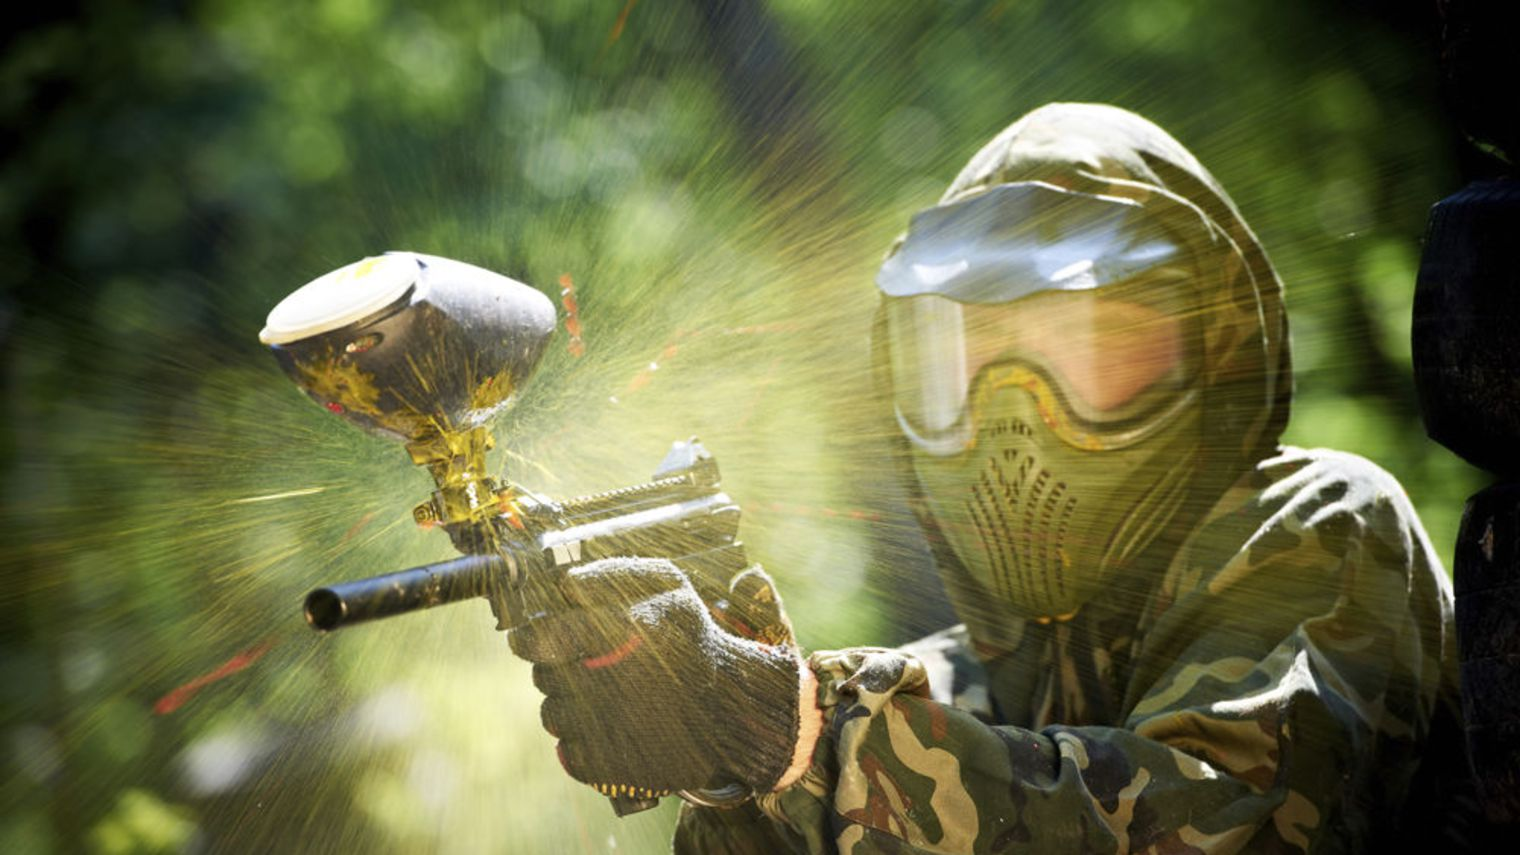 Ou jouer au Paintball au Pays Basque